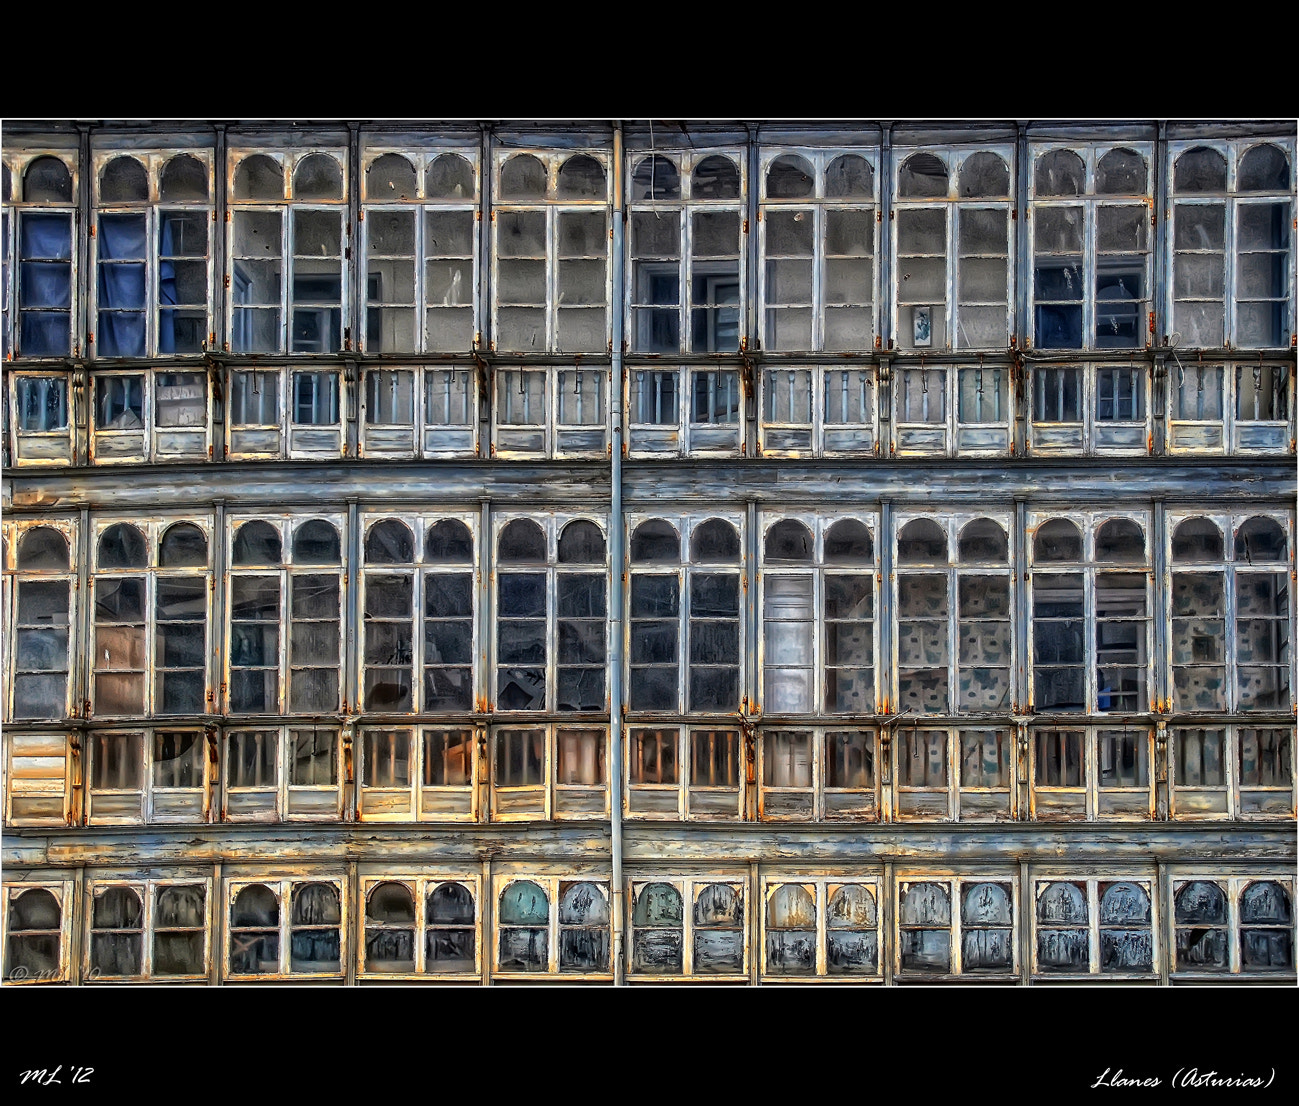 Photograph Ventanales / Windows by Manuel Lancha on 500px